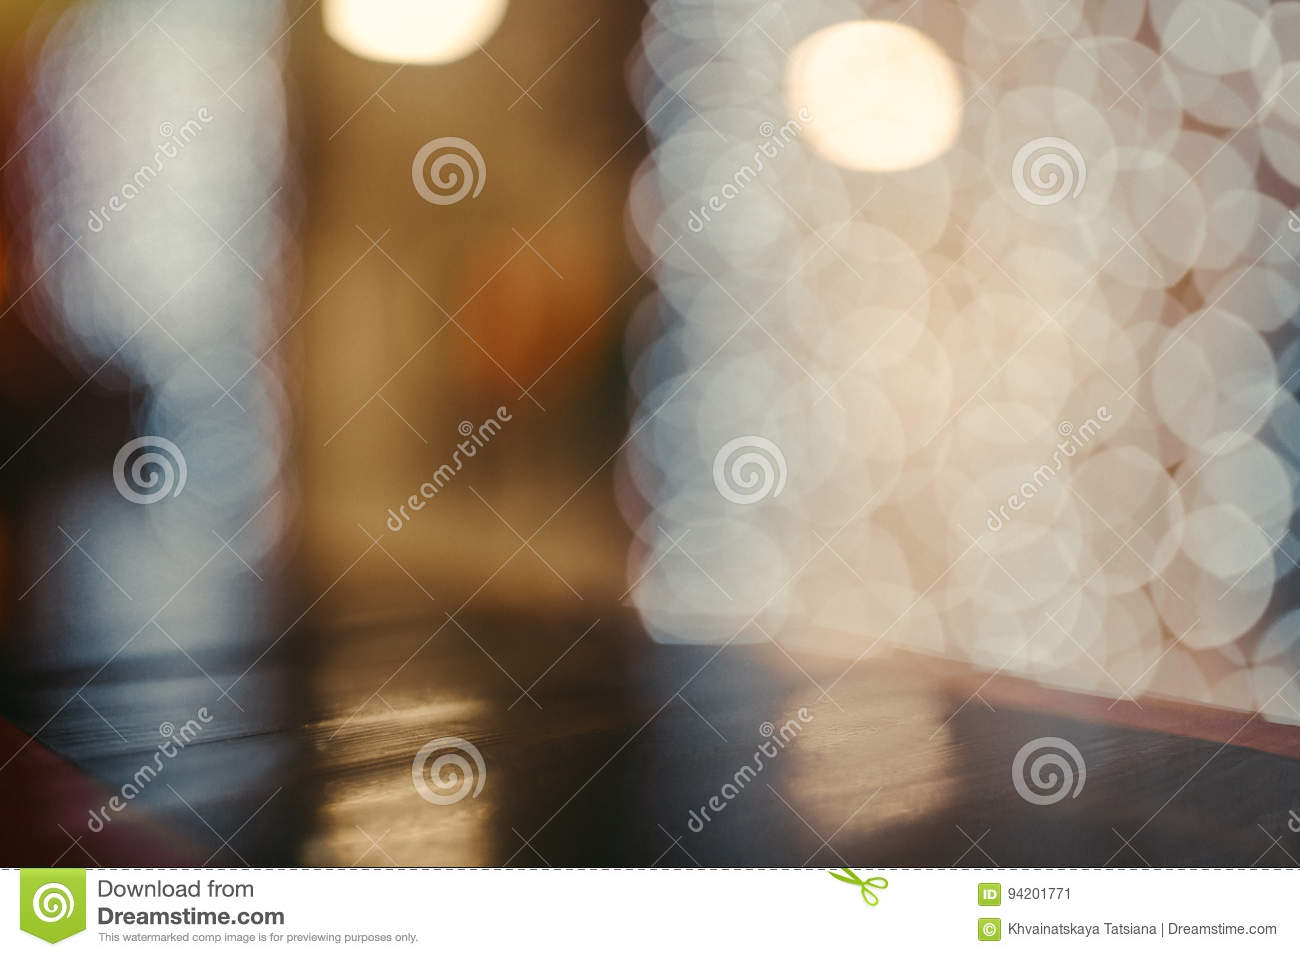 Coloful circle bokeh background. Defocused image. Blurred photo illustration. Copy space for design and text